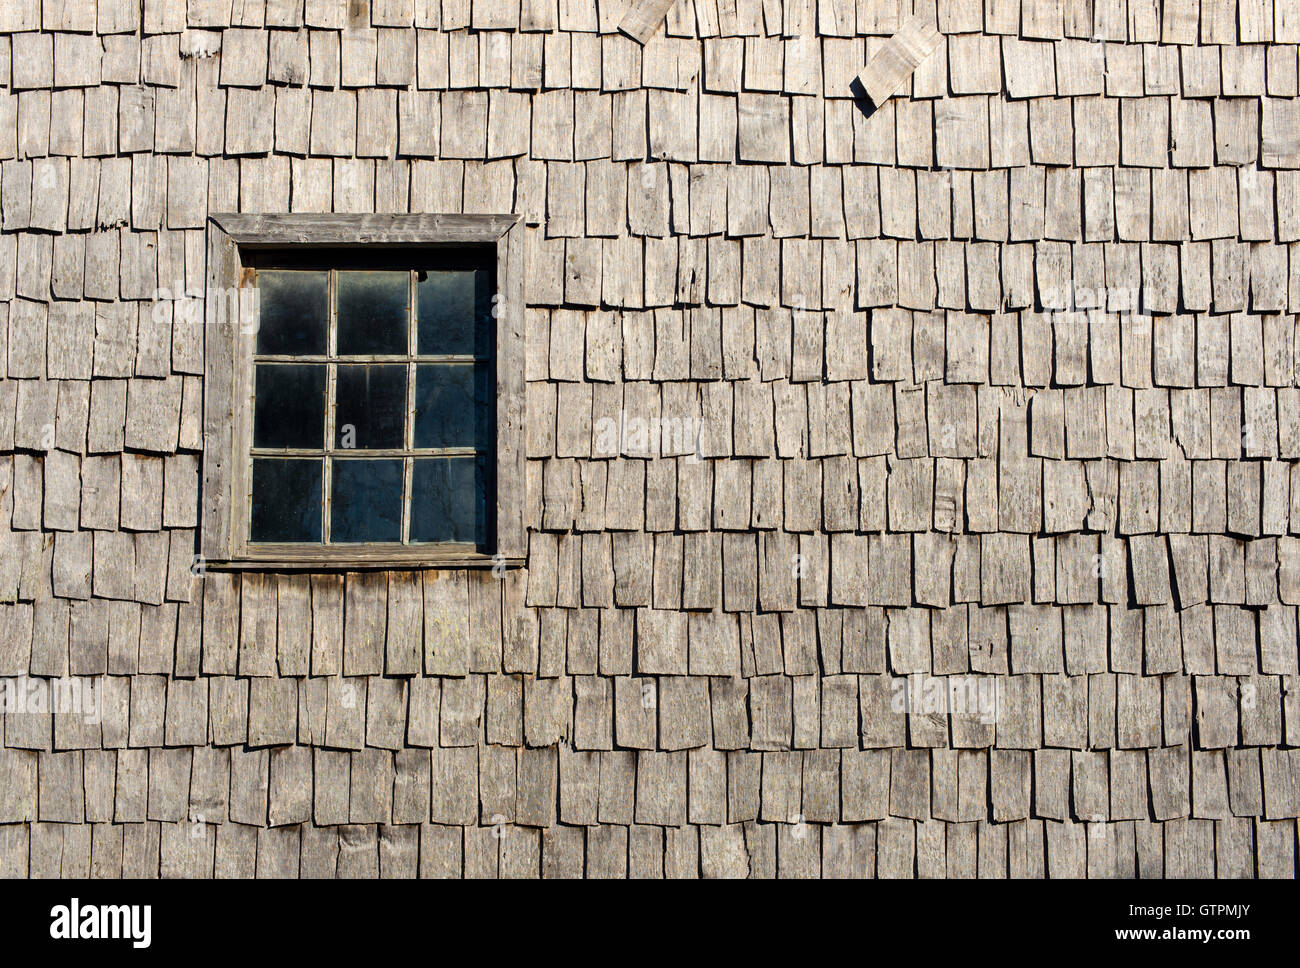 Window, old window. Chiloe, Chile. Madera de alerce, vestigio. - Stock Image